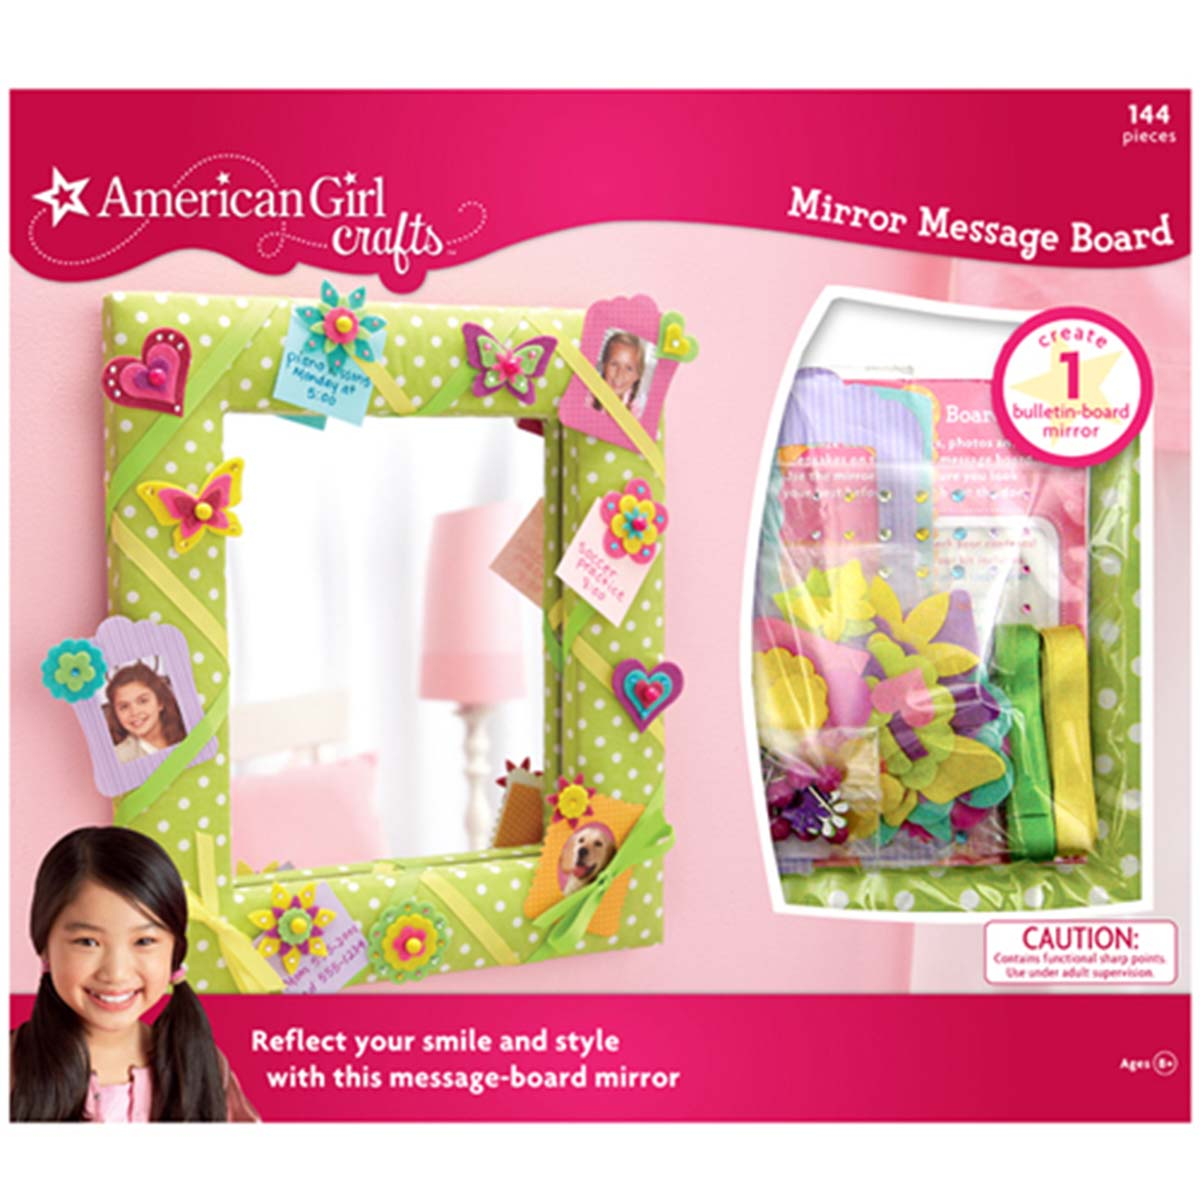 American Girl Crafts Mirror Message Board Kit by AMERICAN GIRL CRAFTS